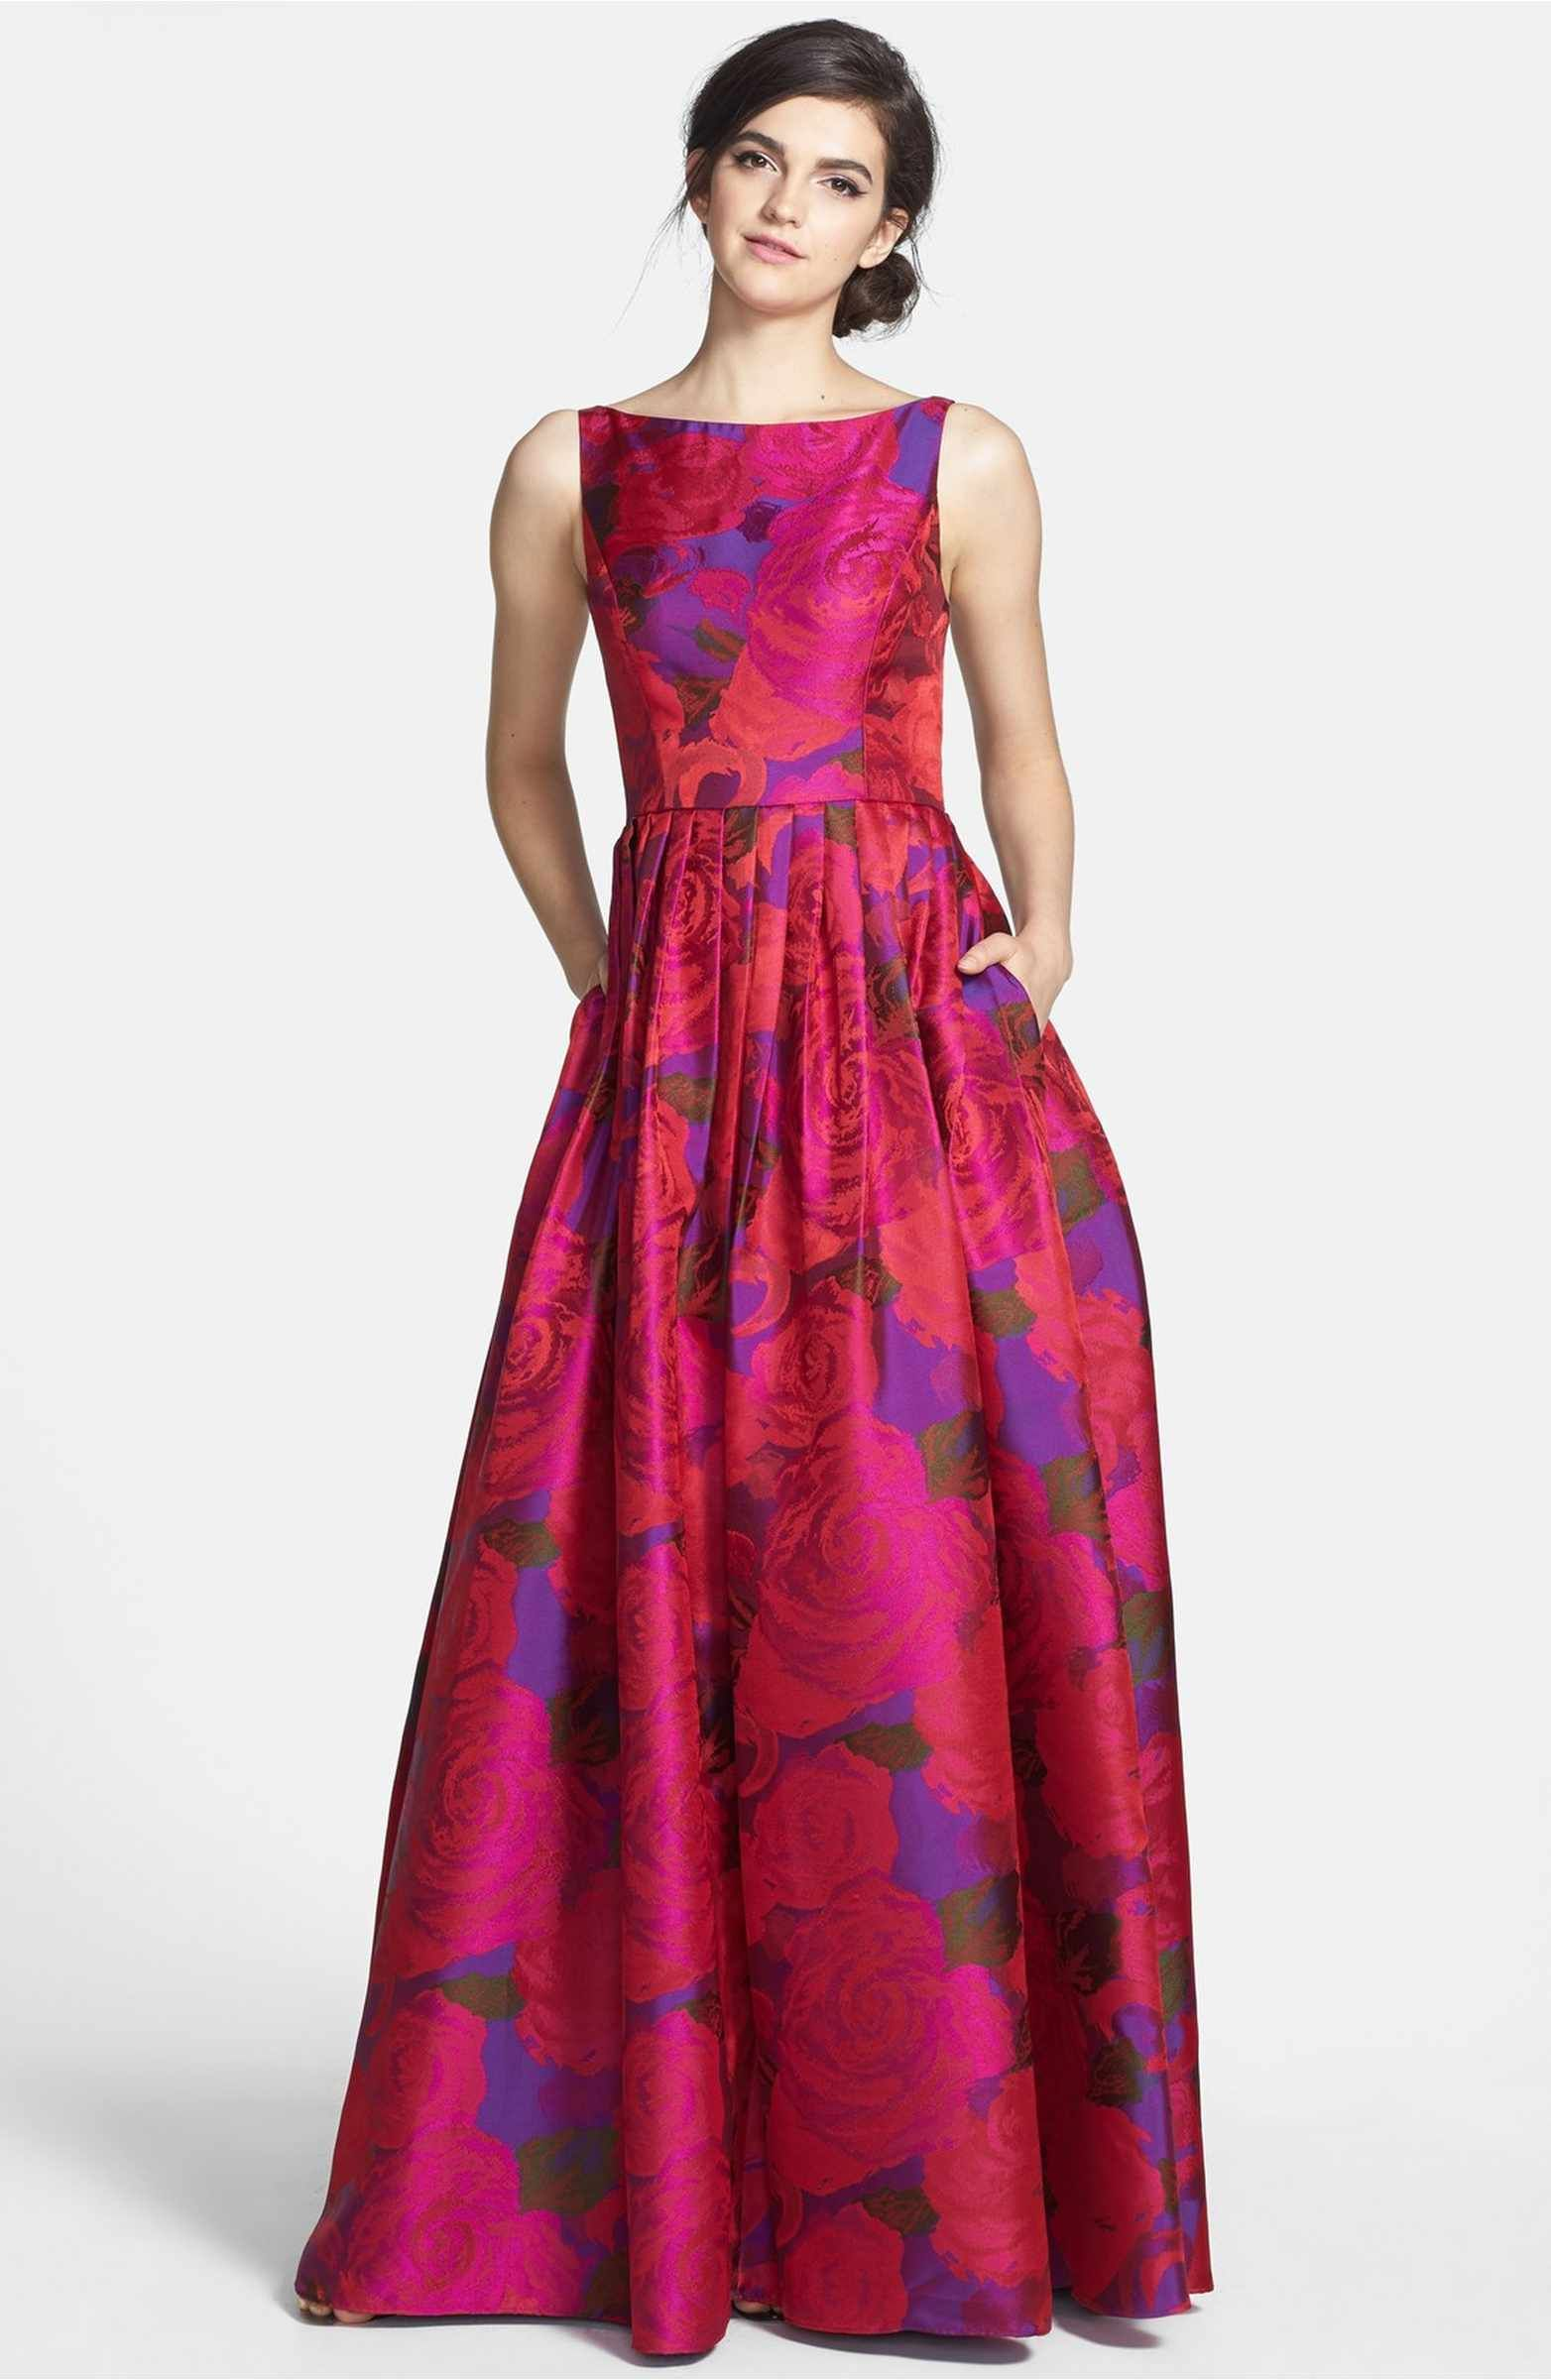 Main Image Adrianna Papell Floral Print Jacquard Ballgown In 2020 Ball Gown Dresses Fashion Dresses Gowns